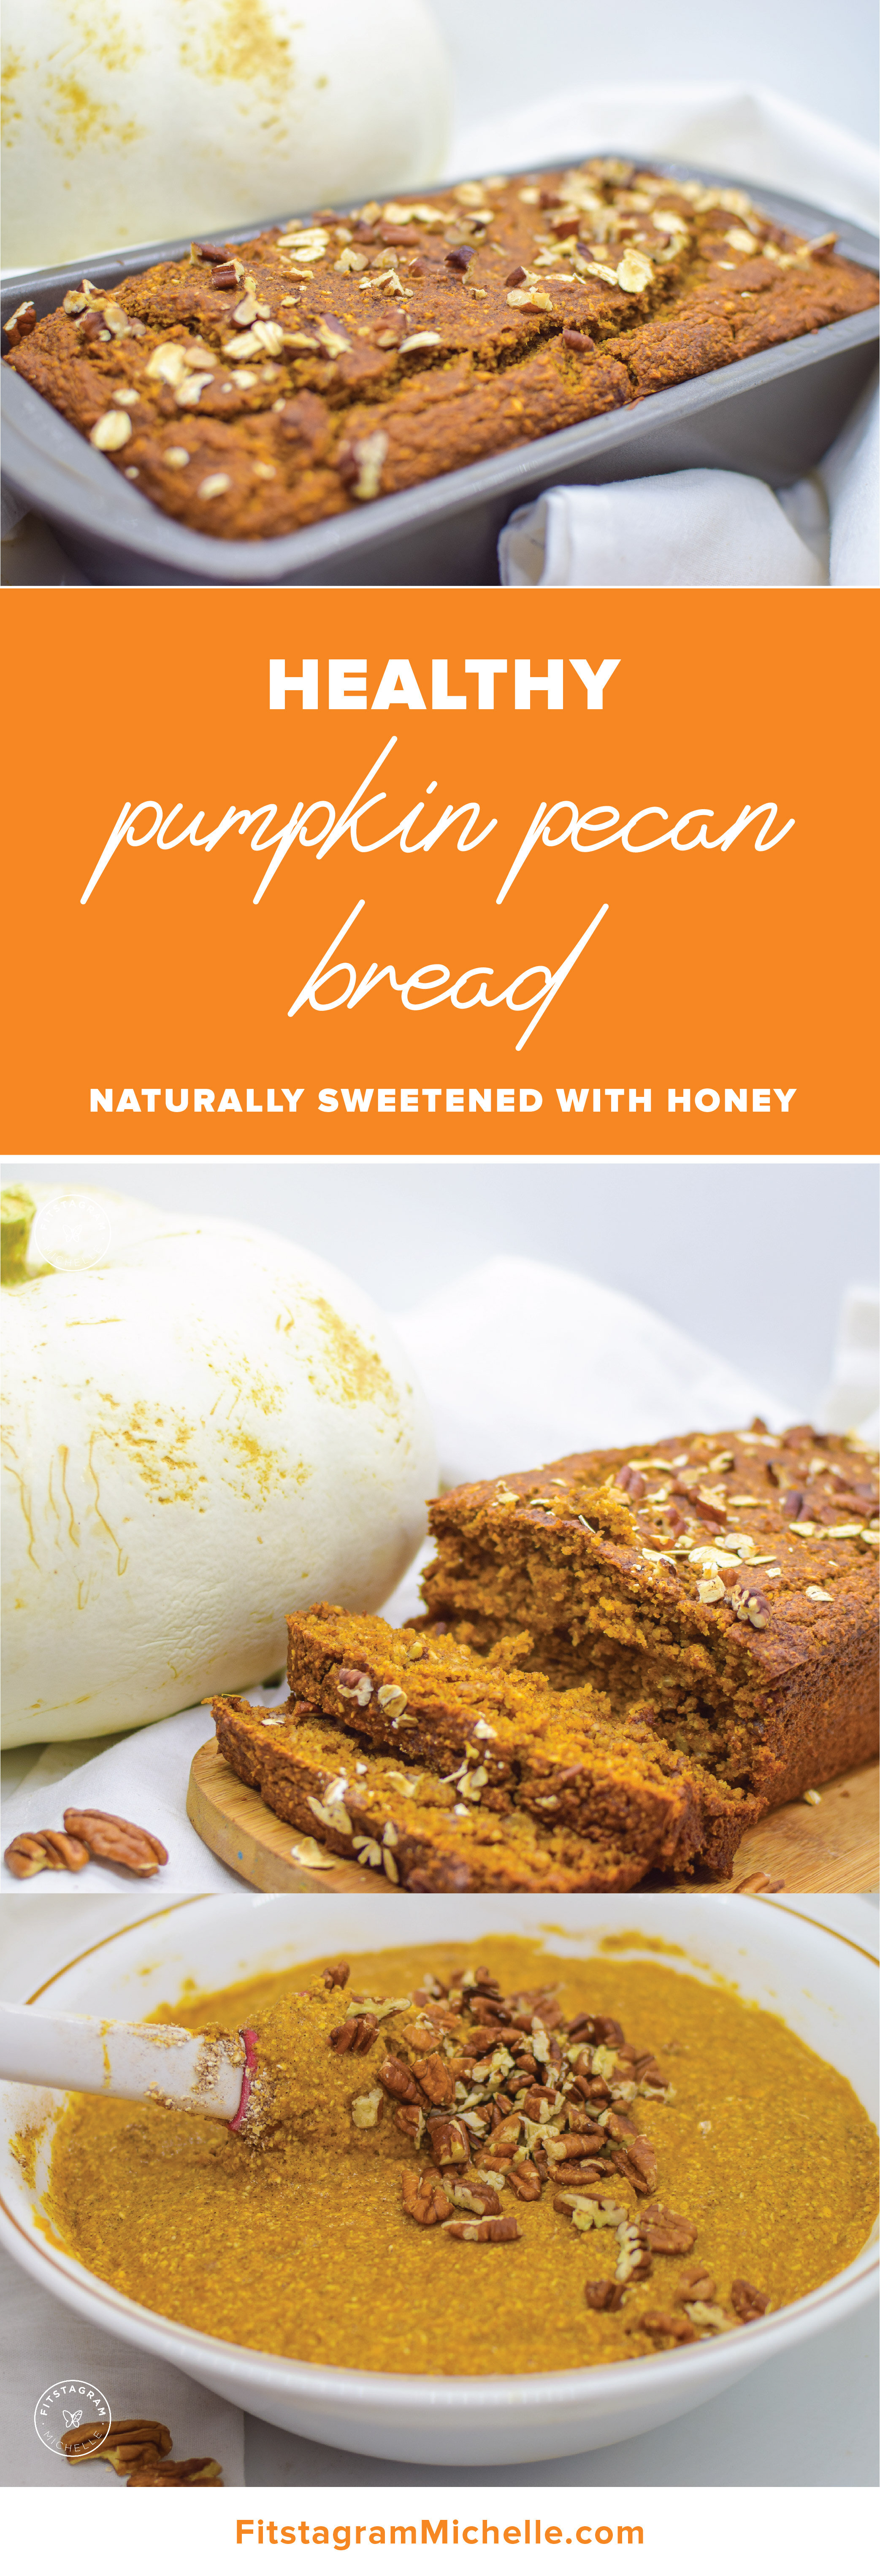 Healthy Pumpkin Pecan Bread - perfect for breakfast or snack. These are dairy-free, gluten free, sugar-free, and butter free.